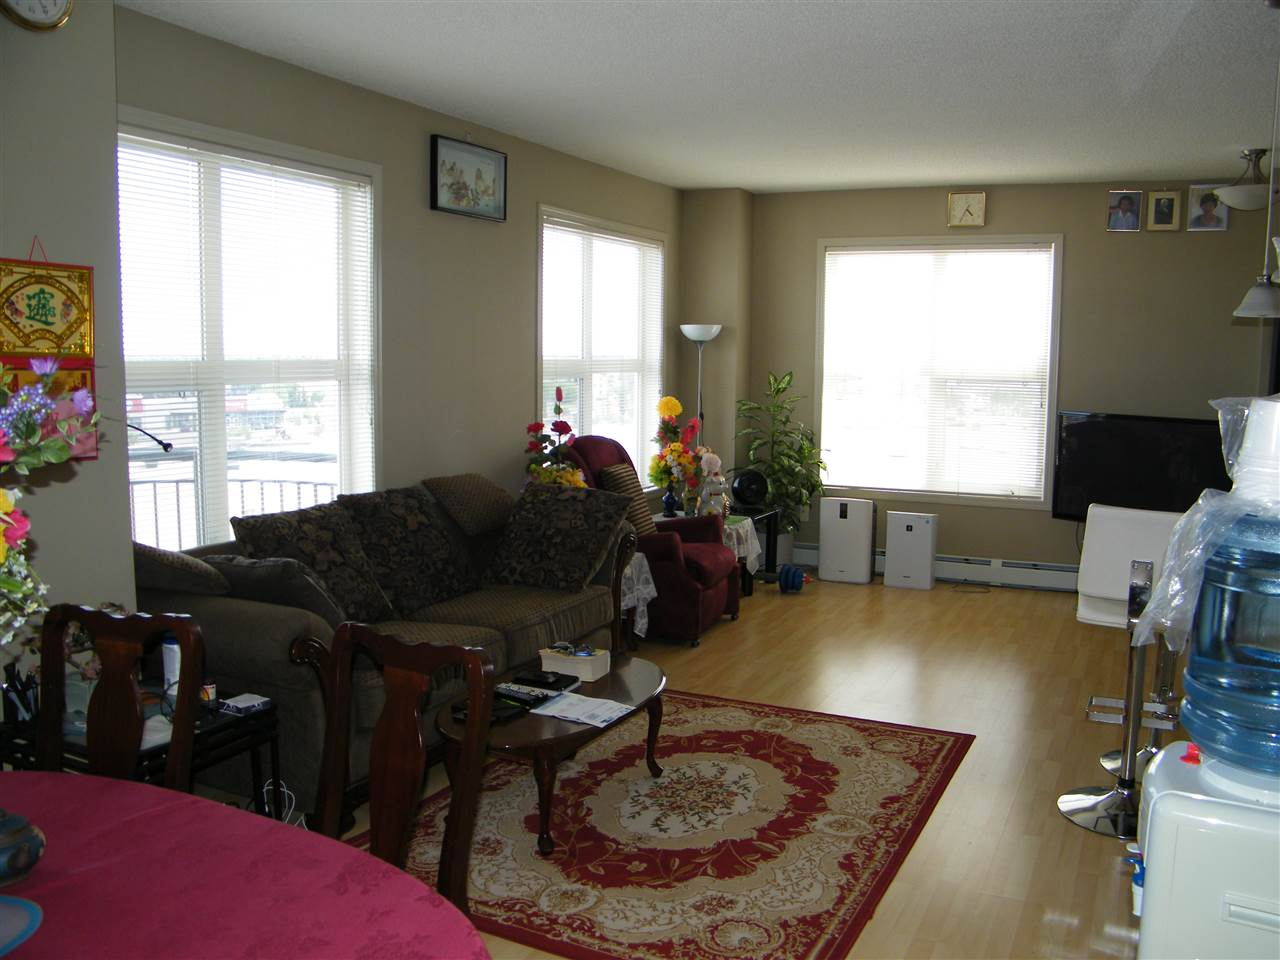 Photo 10: 2-615 4245 139 Avenue in Edmonton: Zone 35 Condo for sale : MLS® # E4068635